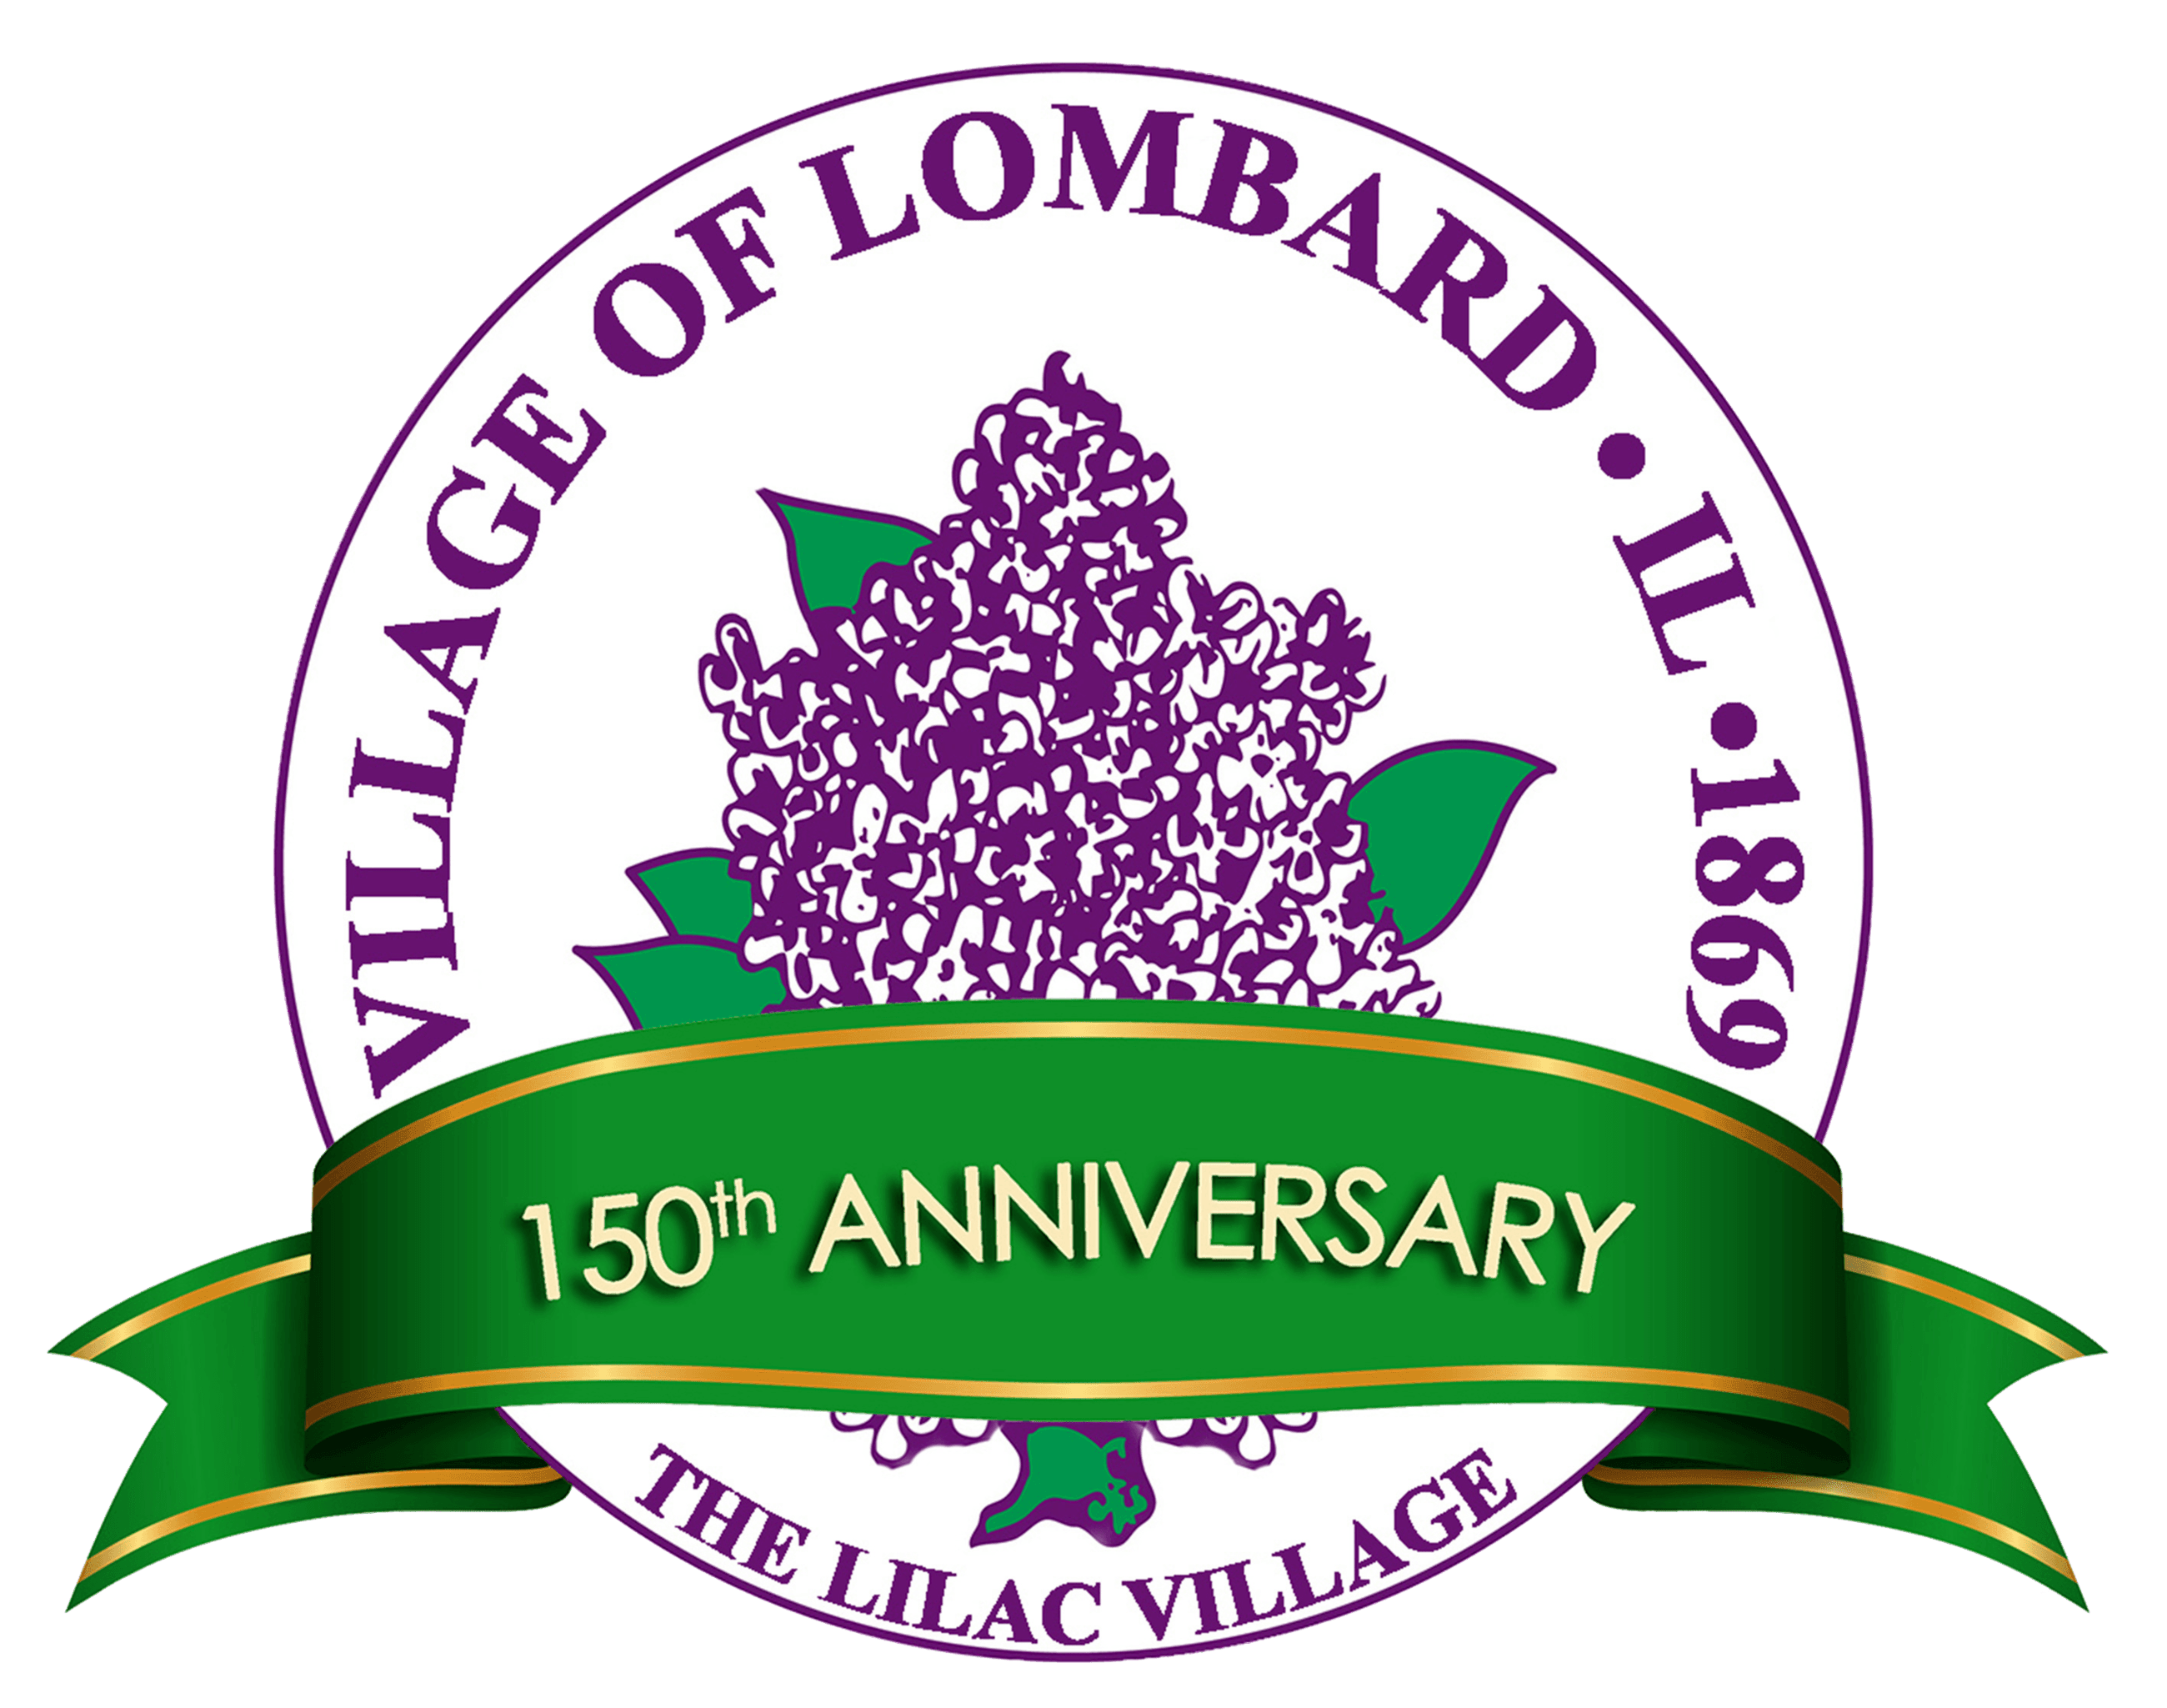 Village of Lombard 150th Anniversary